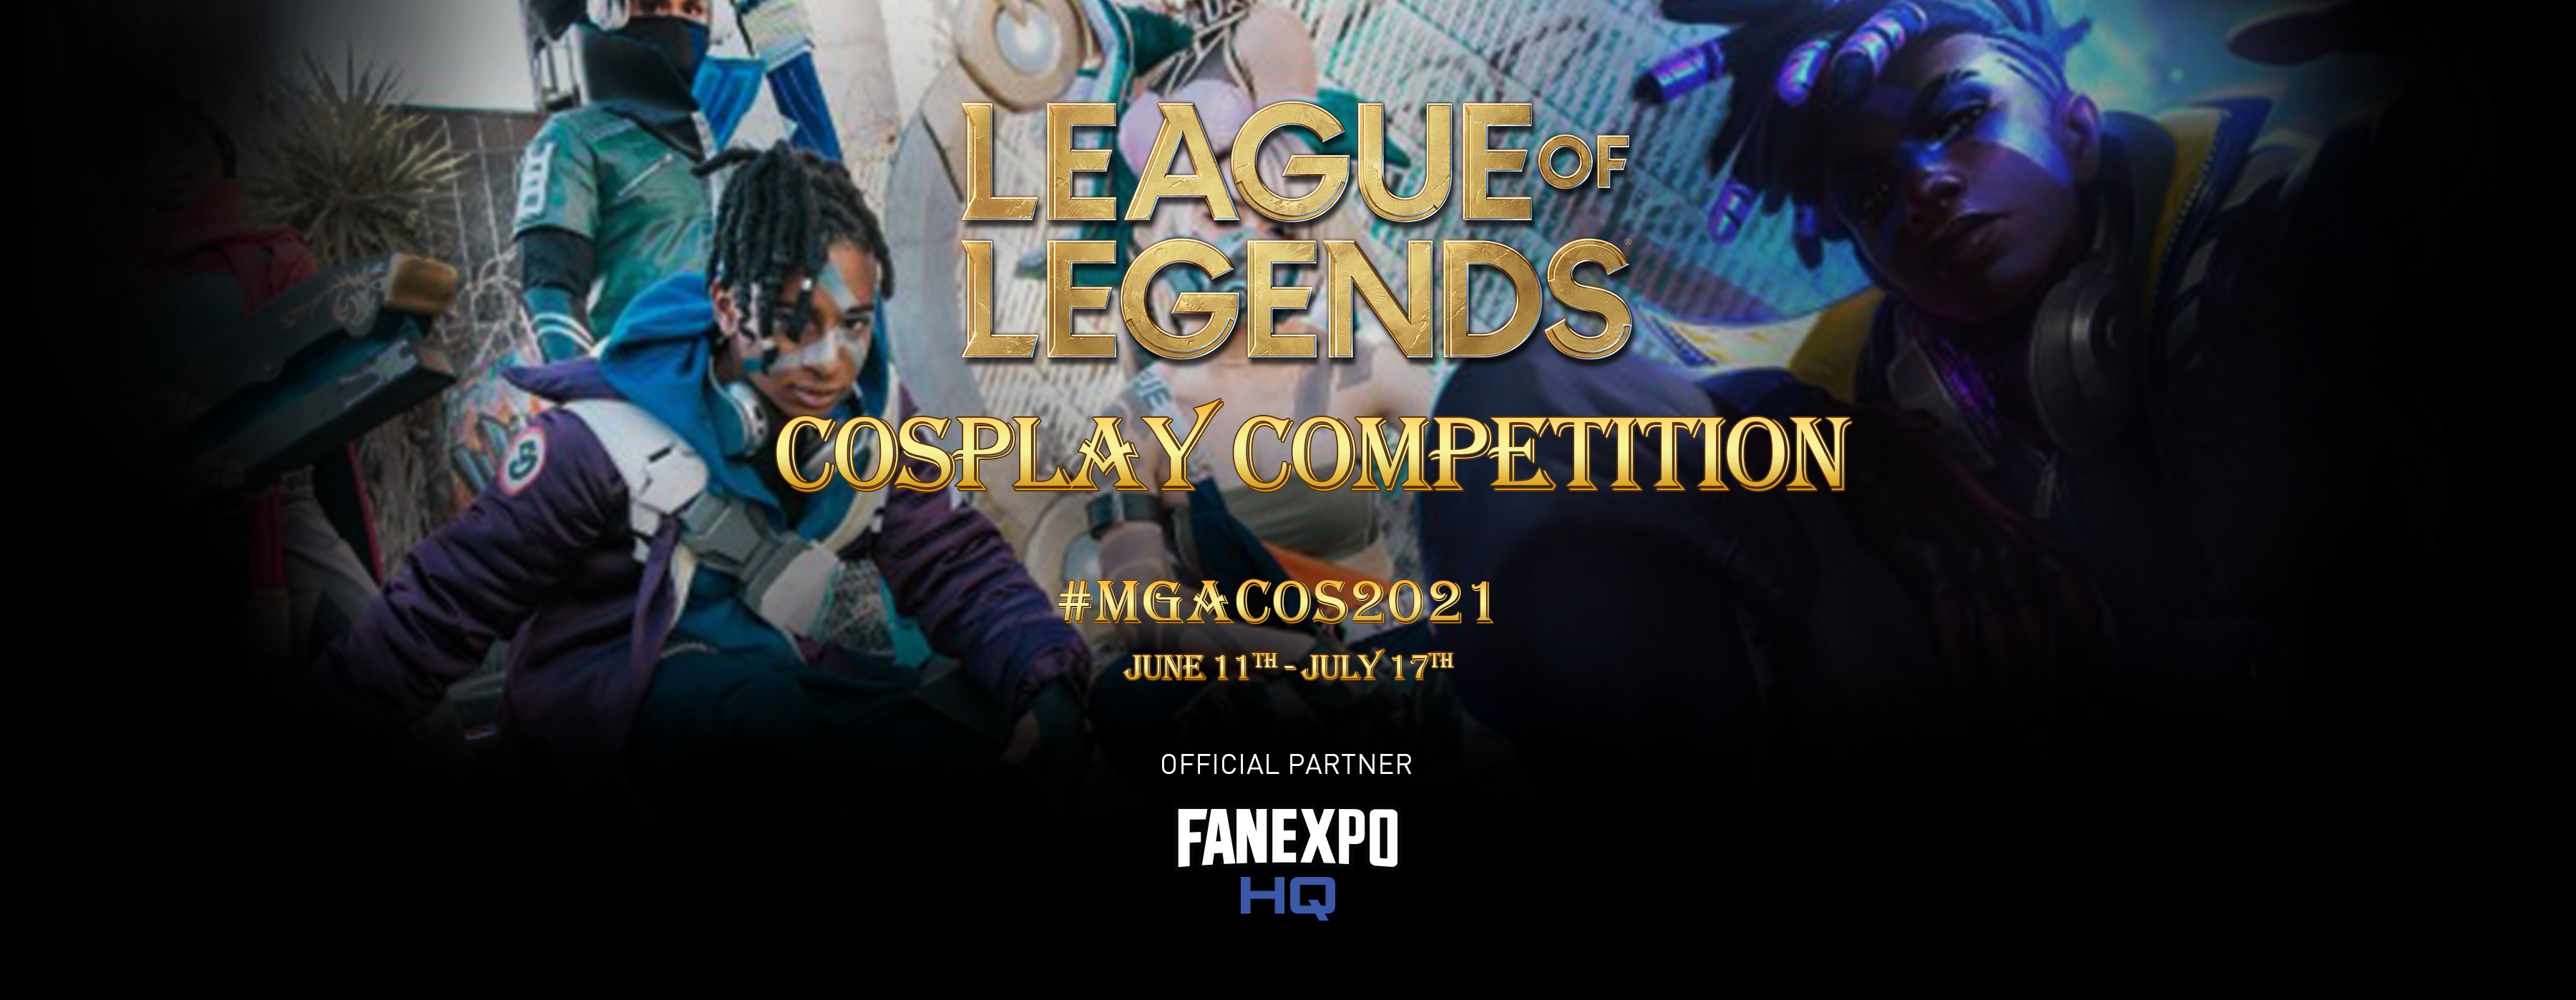 msi cosplay competition banner